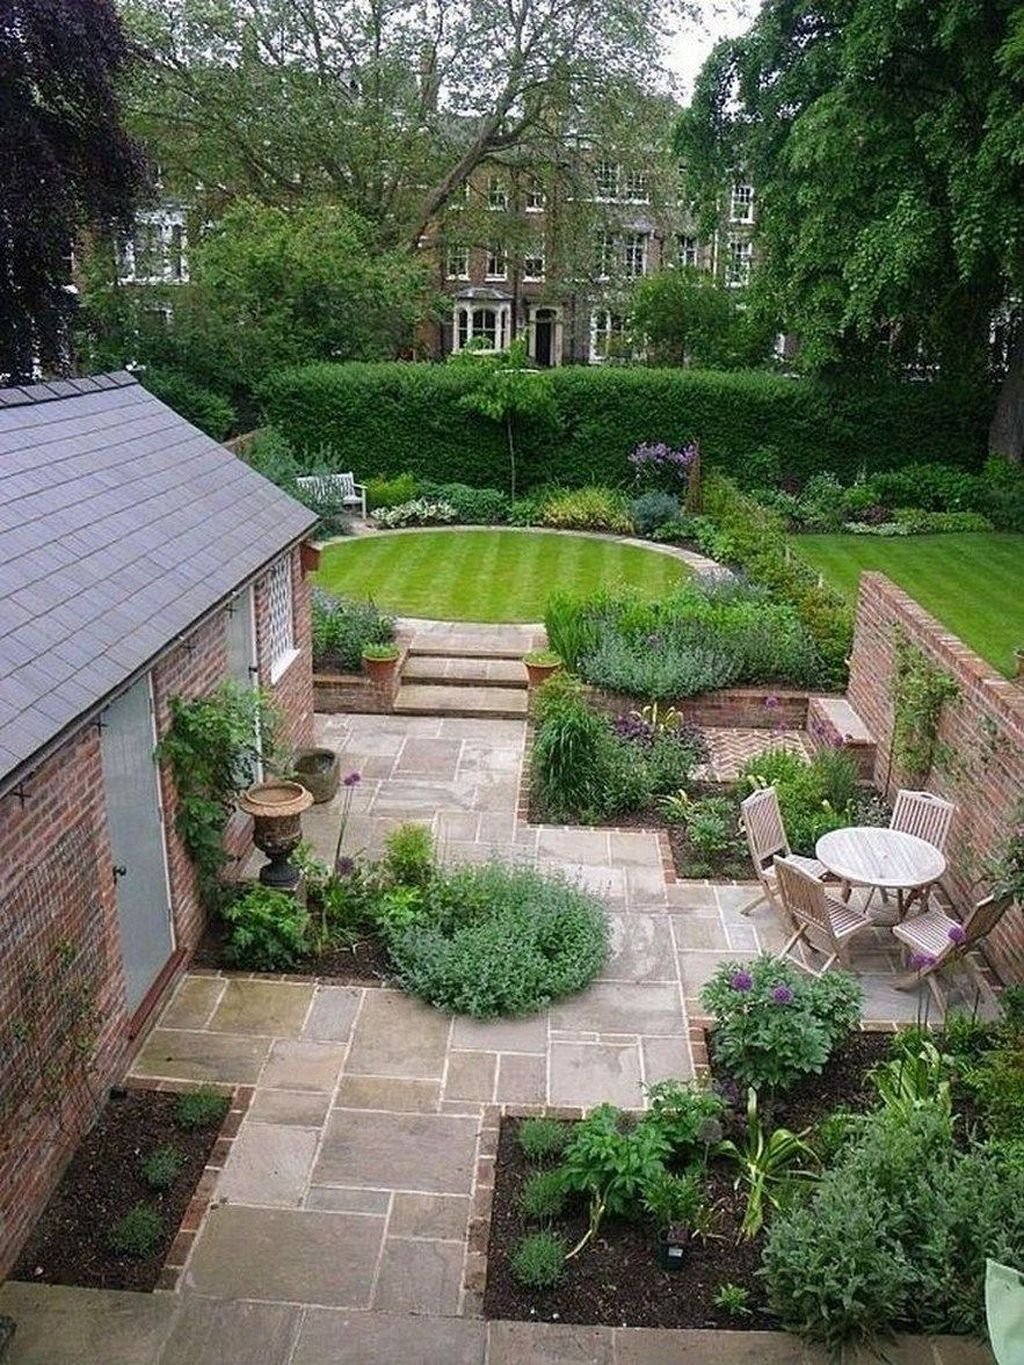 The Best Minimalist Garden Design Ideas You Have To Try 18